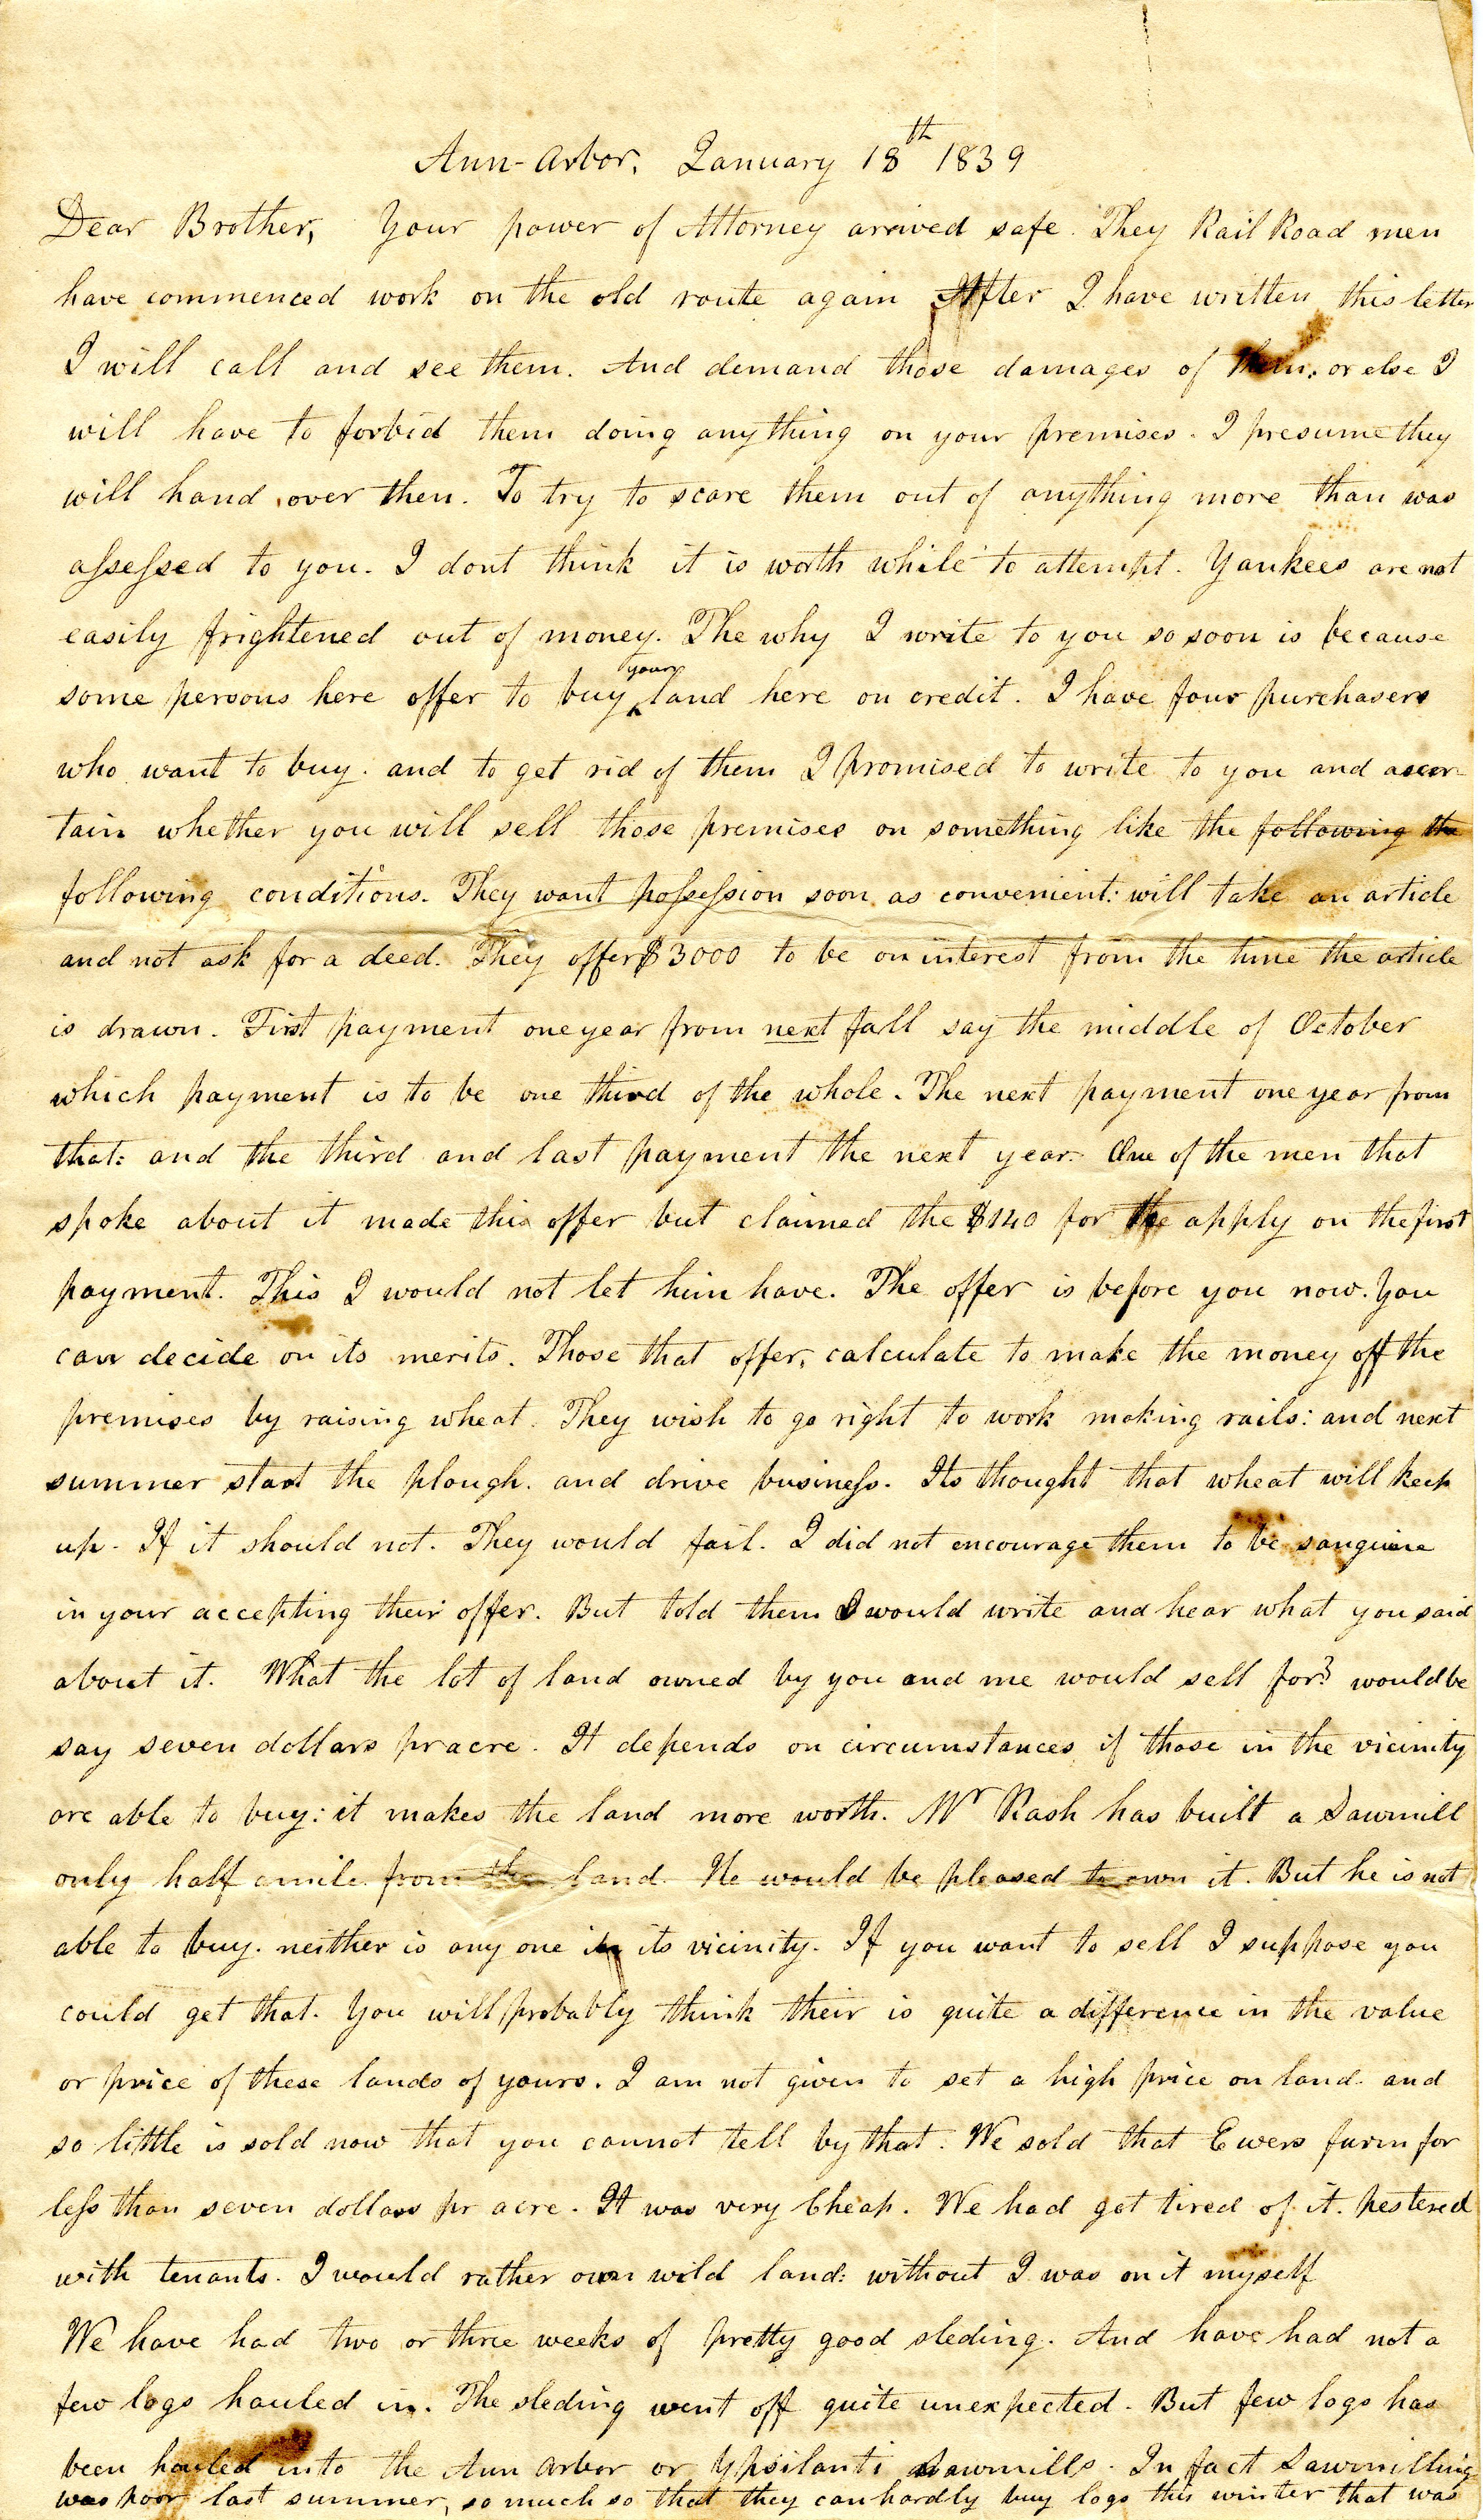 Letter From John Geddes to William Geddes, January 18, 1839 image